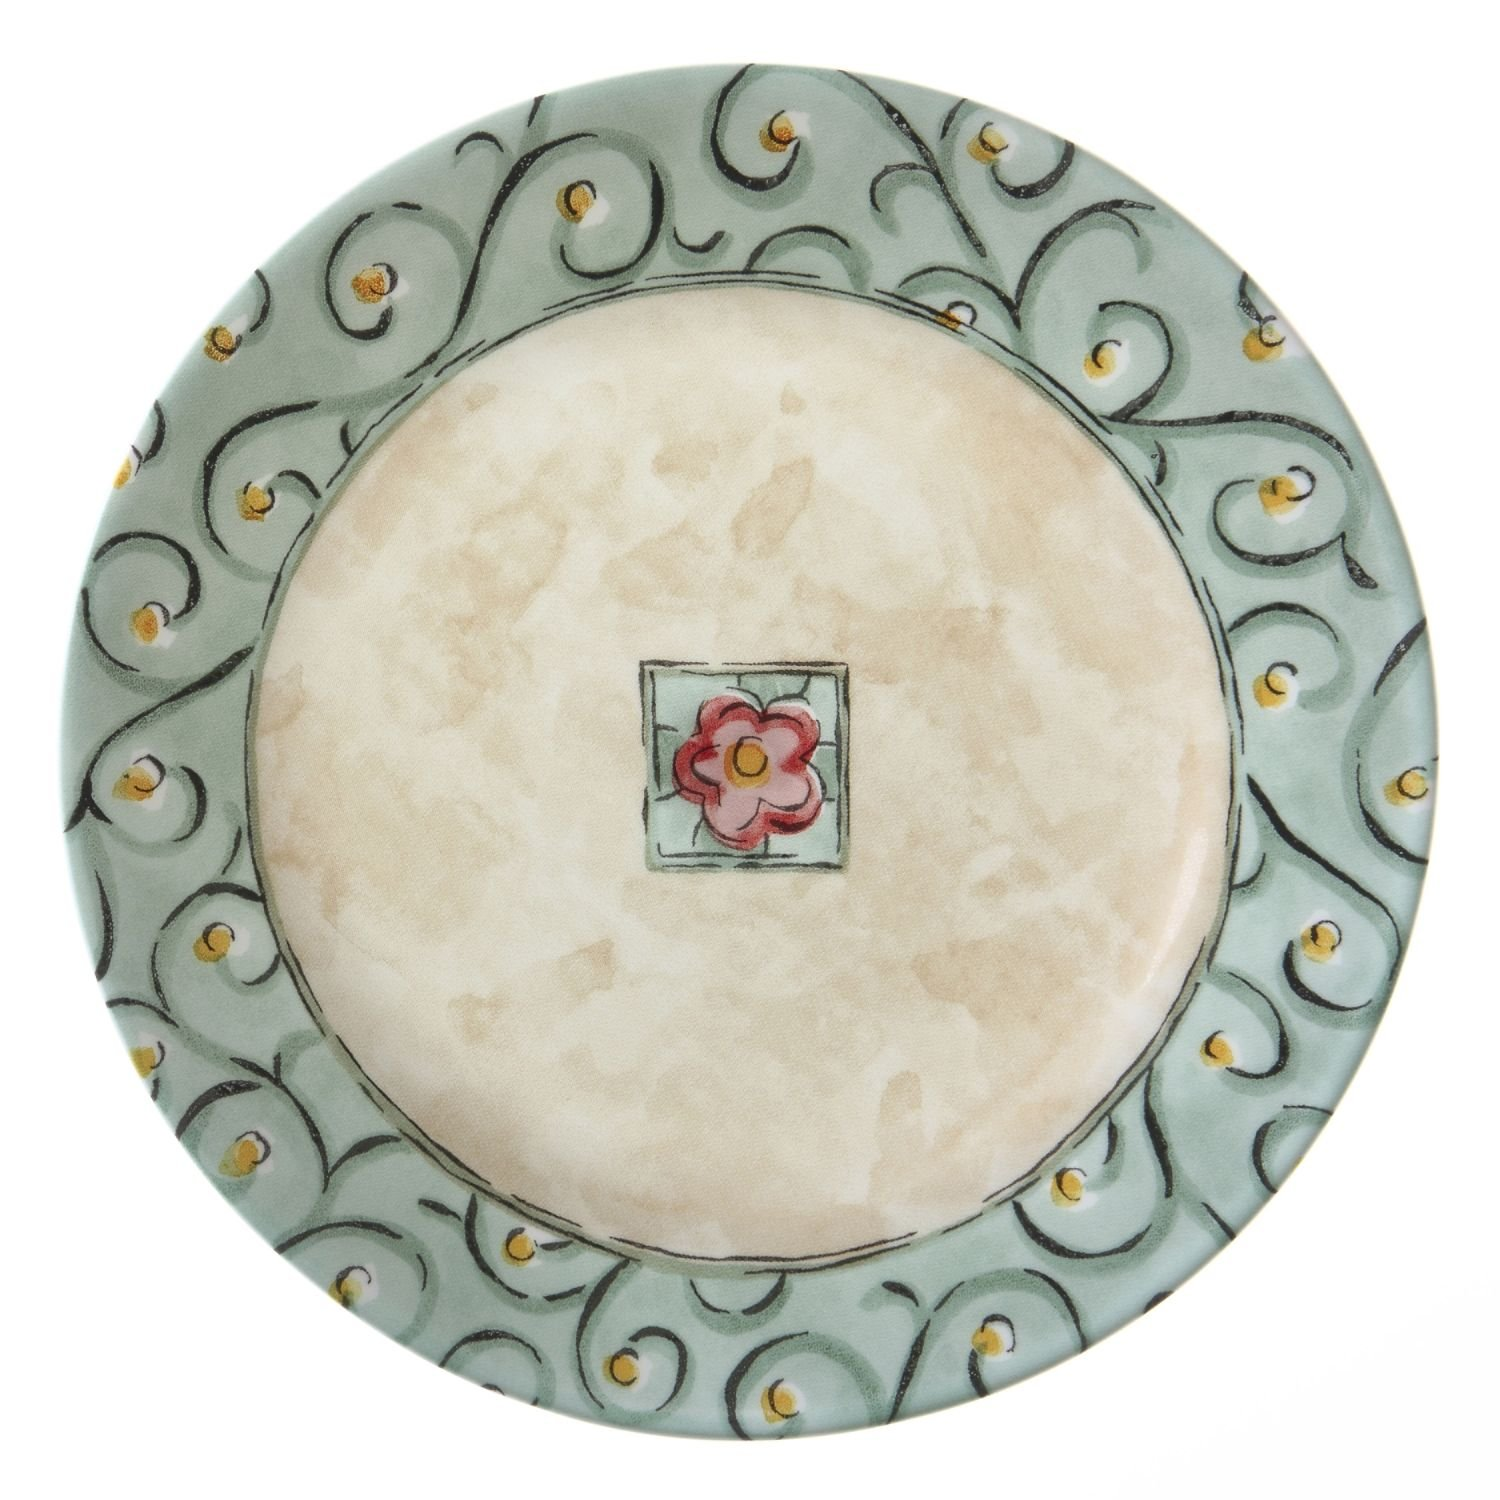 Corelle Impressions Watercolors 8-1/2 Luncheon Plate (Set of 8) by Corelle Coordinates 1055239